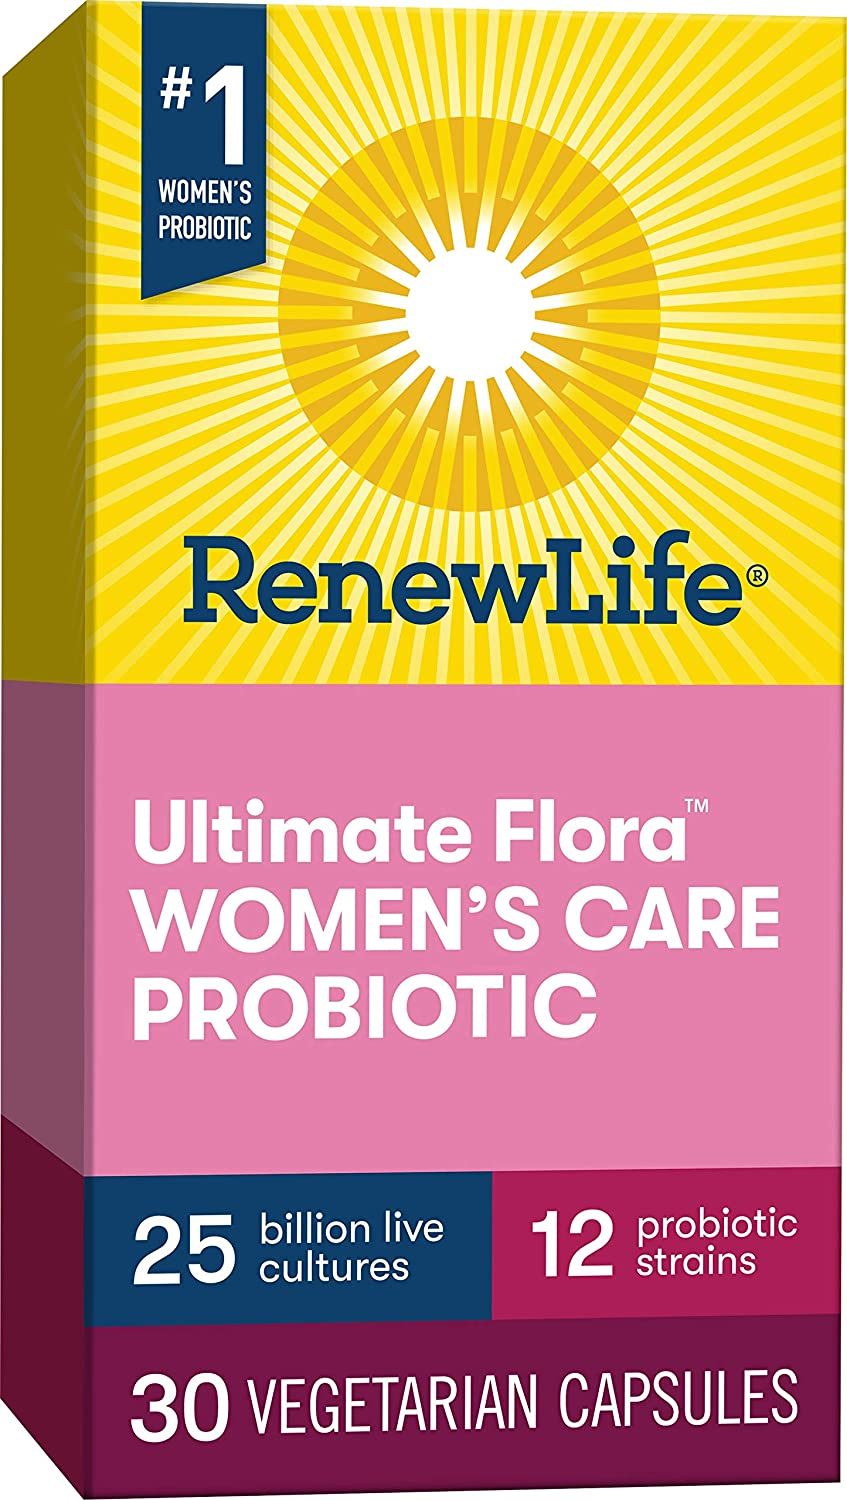 womens healthiness issues finished time of life 60